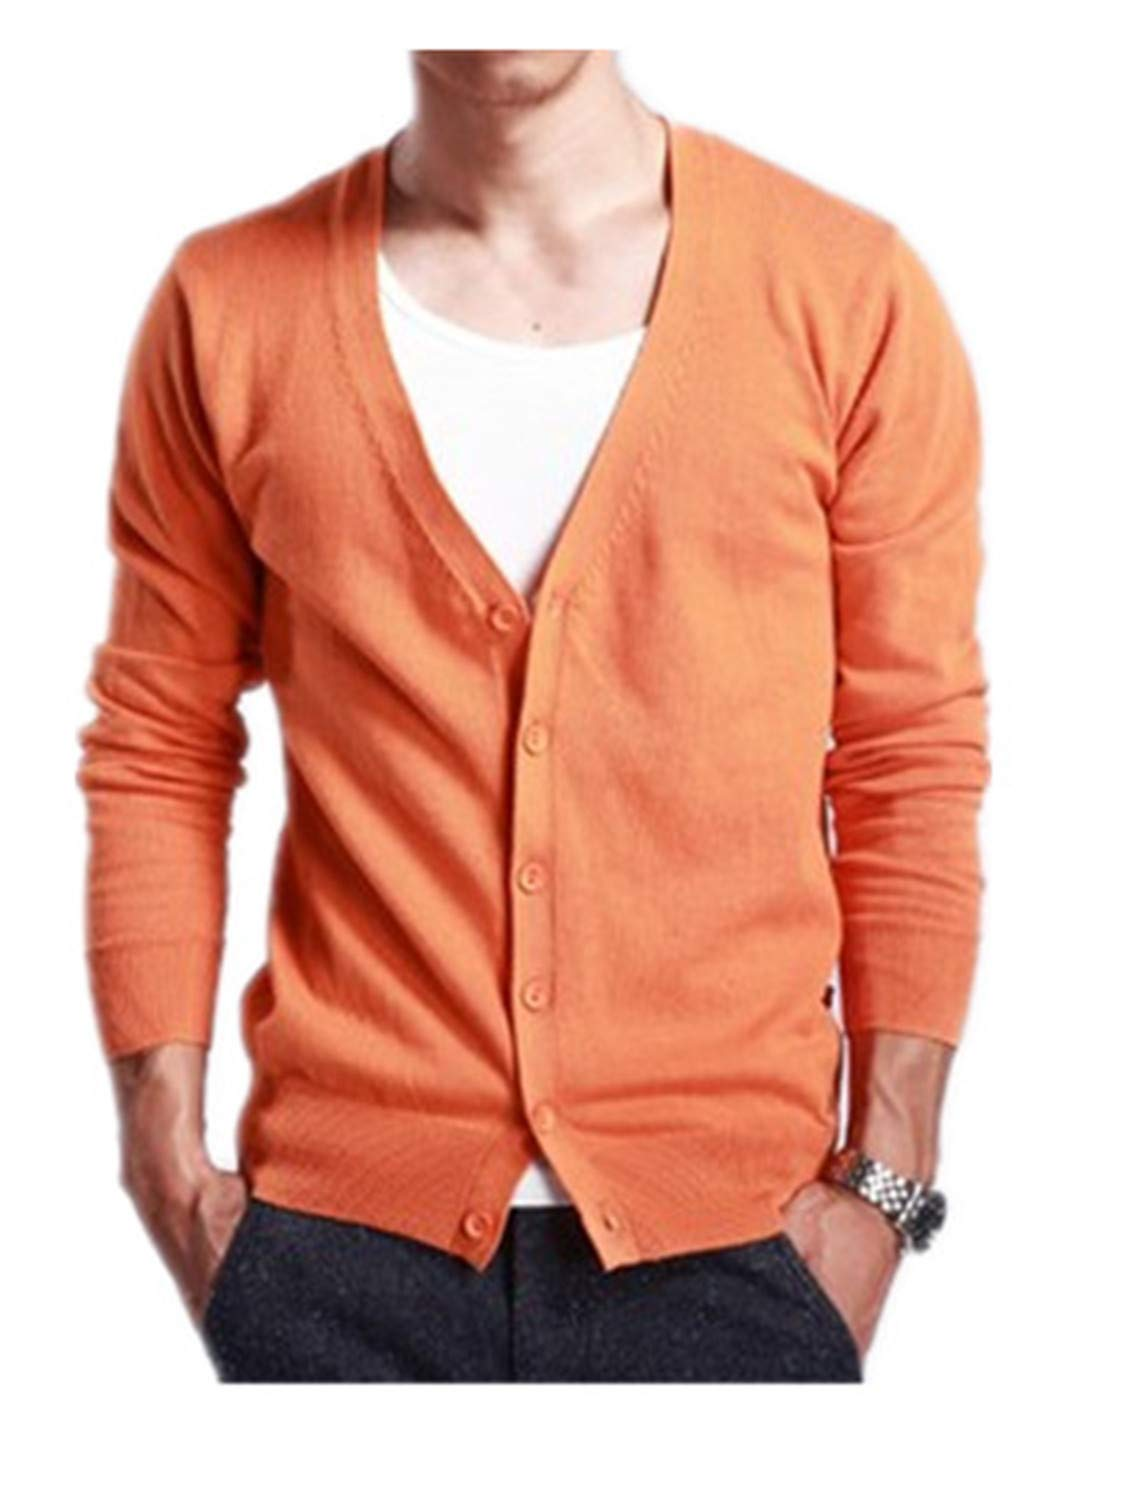 Orcan Bluce Spring and Autumn Men's V-Neck Cardigan Sweater Slim Sweater Thin Orange M